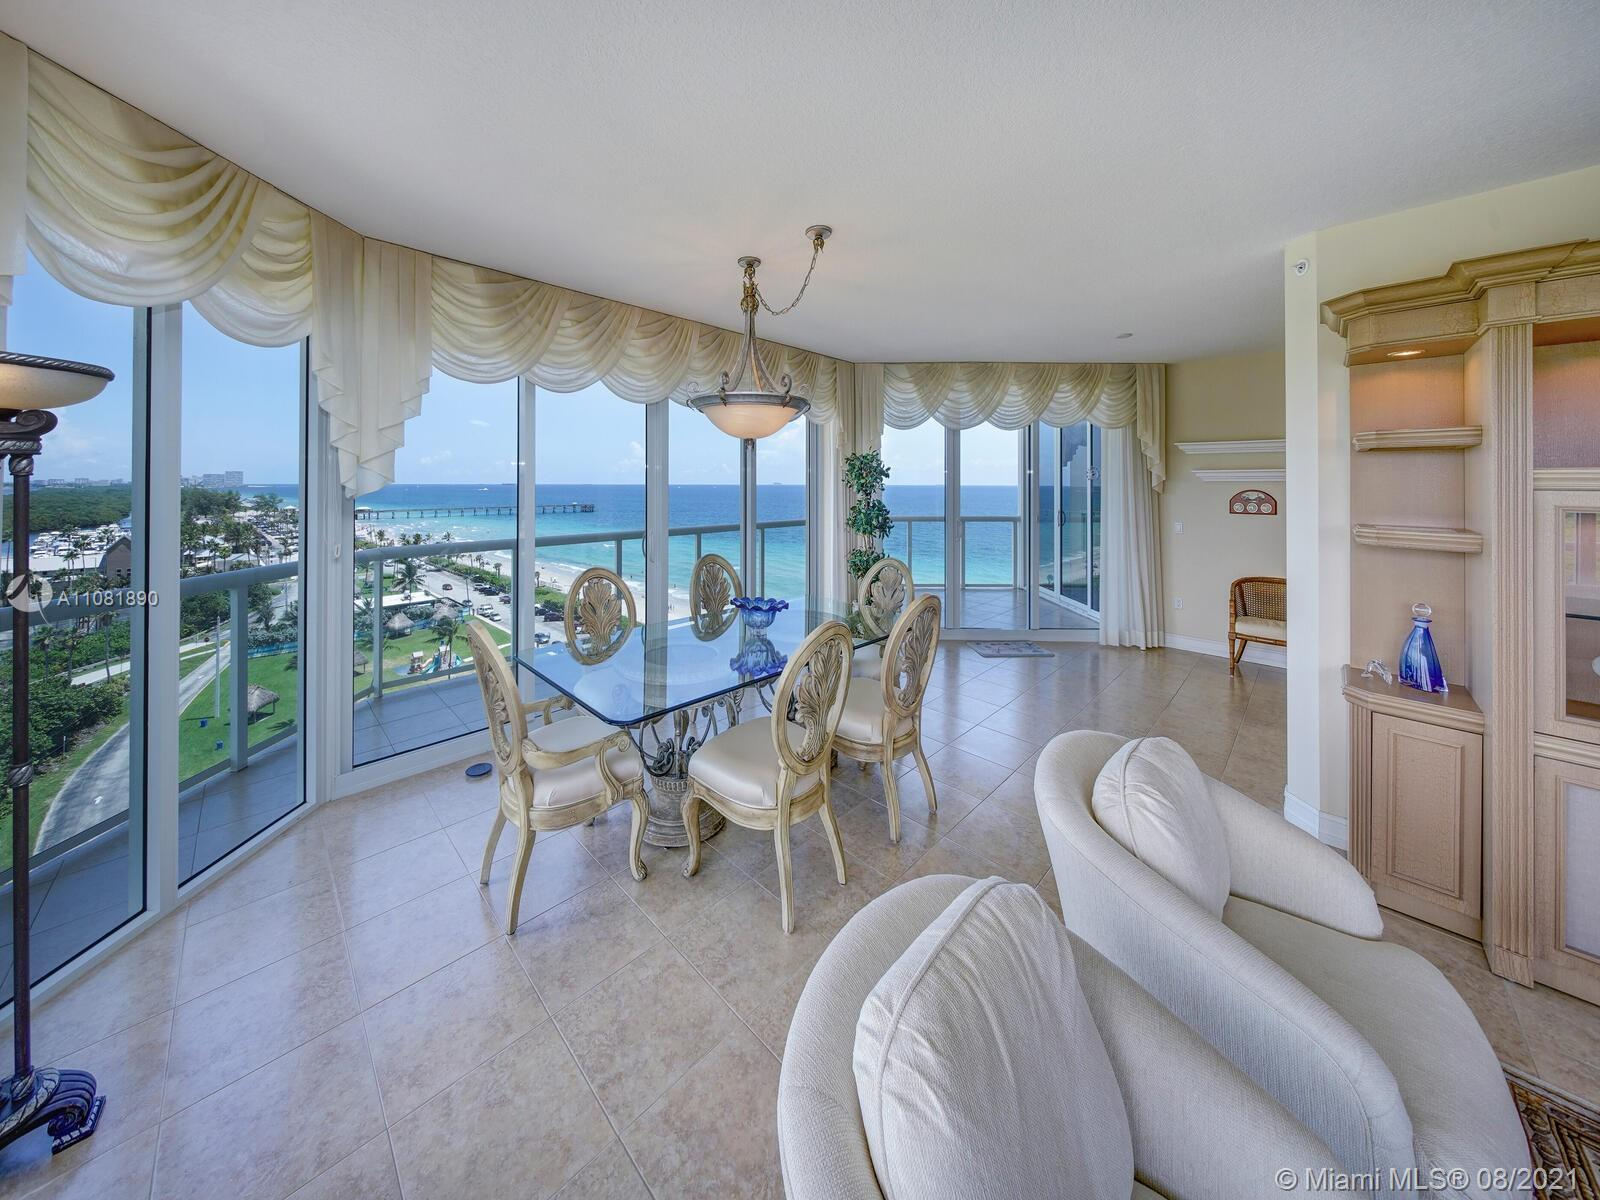 This impressive pristine 2,350 sf 3 bedroom, 2.5 bathroom unit is a spectacular circular residence i